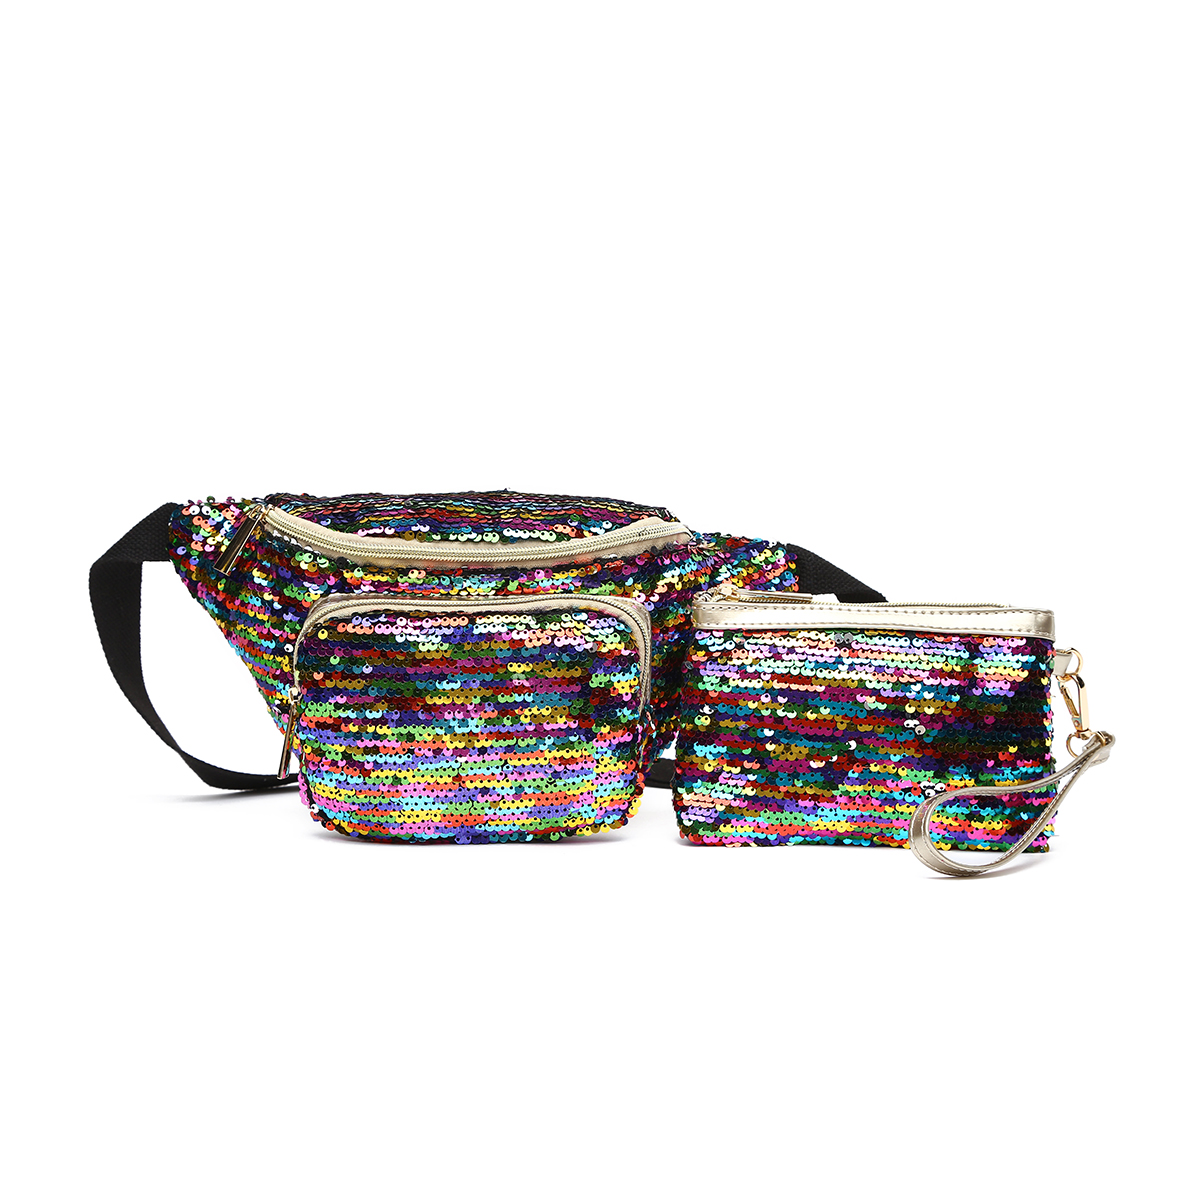 Glitter Bum Waist Fanny Pack with Money Bag Multi1